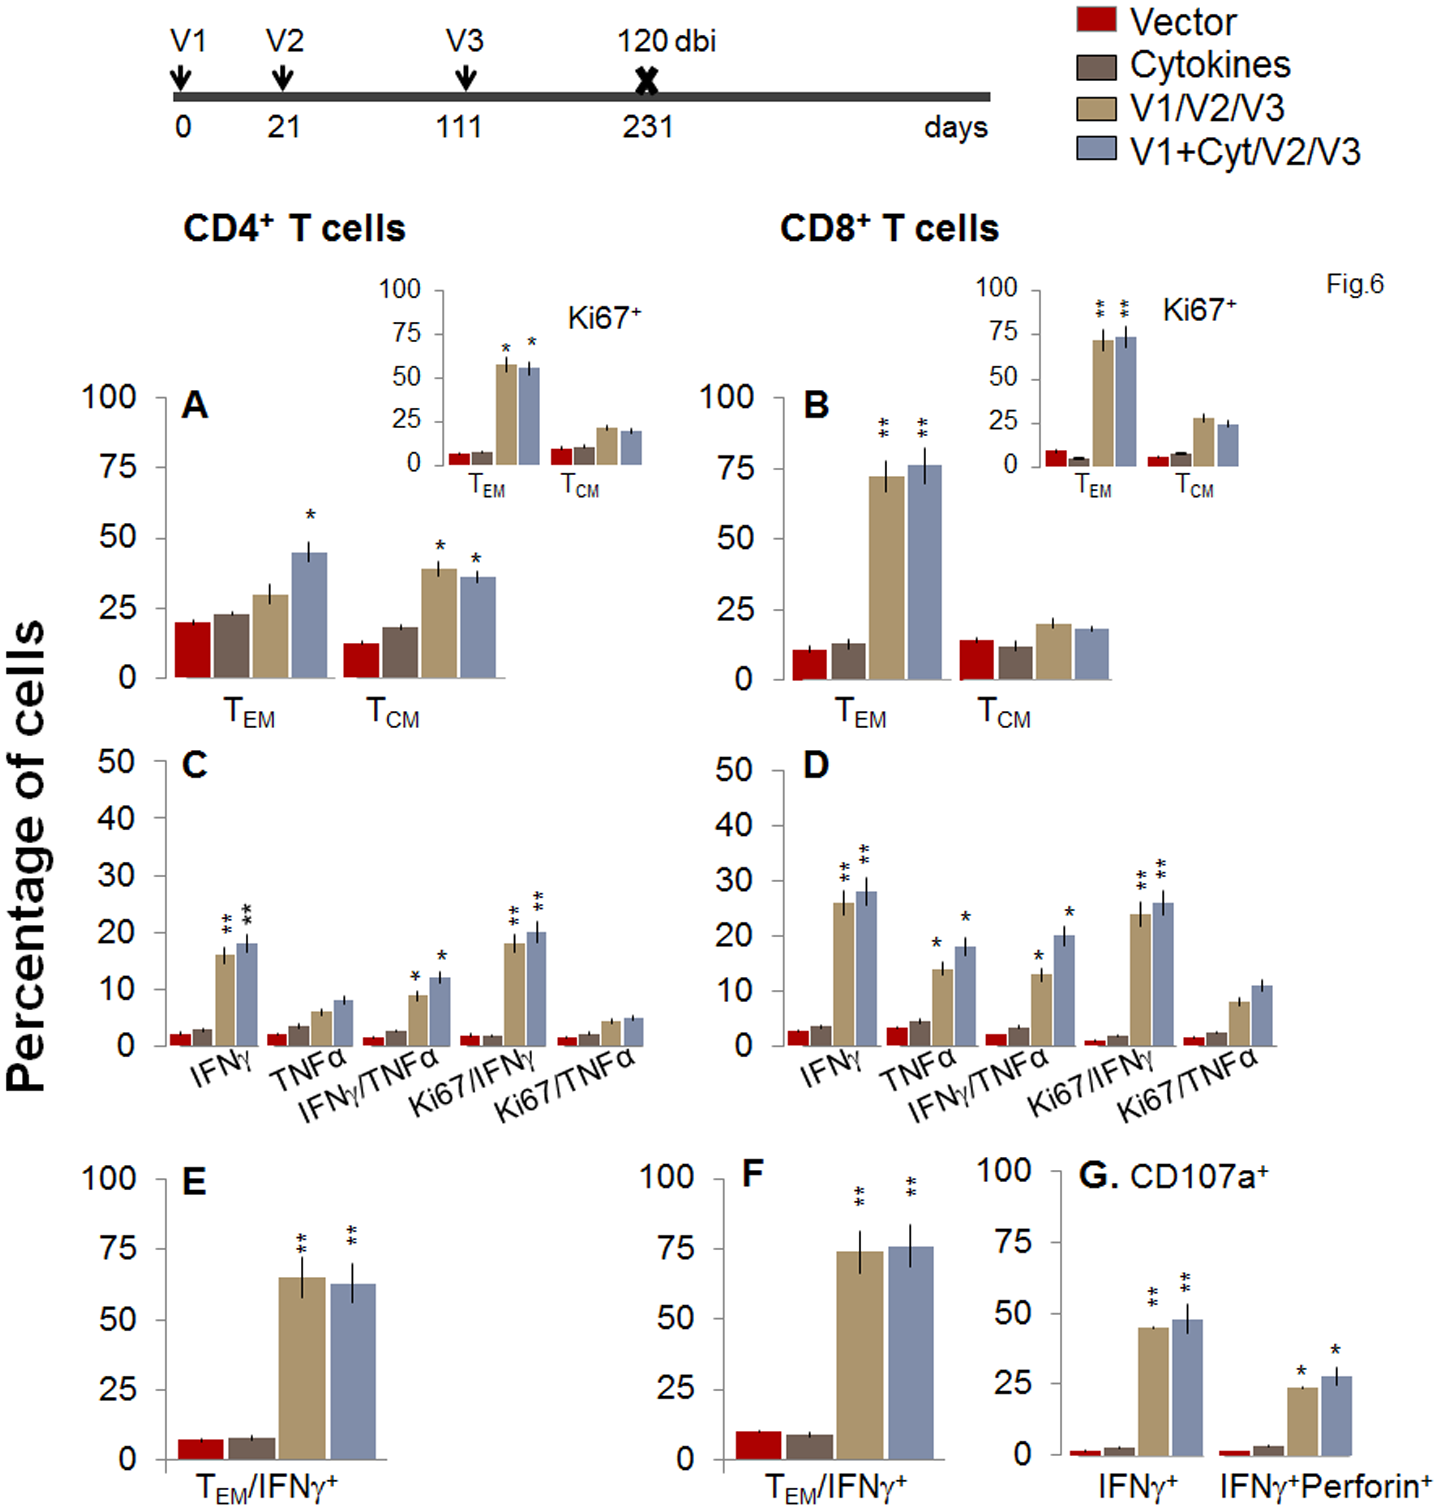 Two-component D/P vaccine/bi elicited T cells retain the antigen-specific functional profile at 120 days post bi.